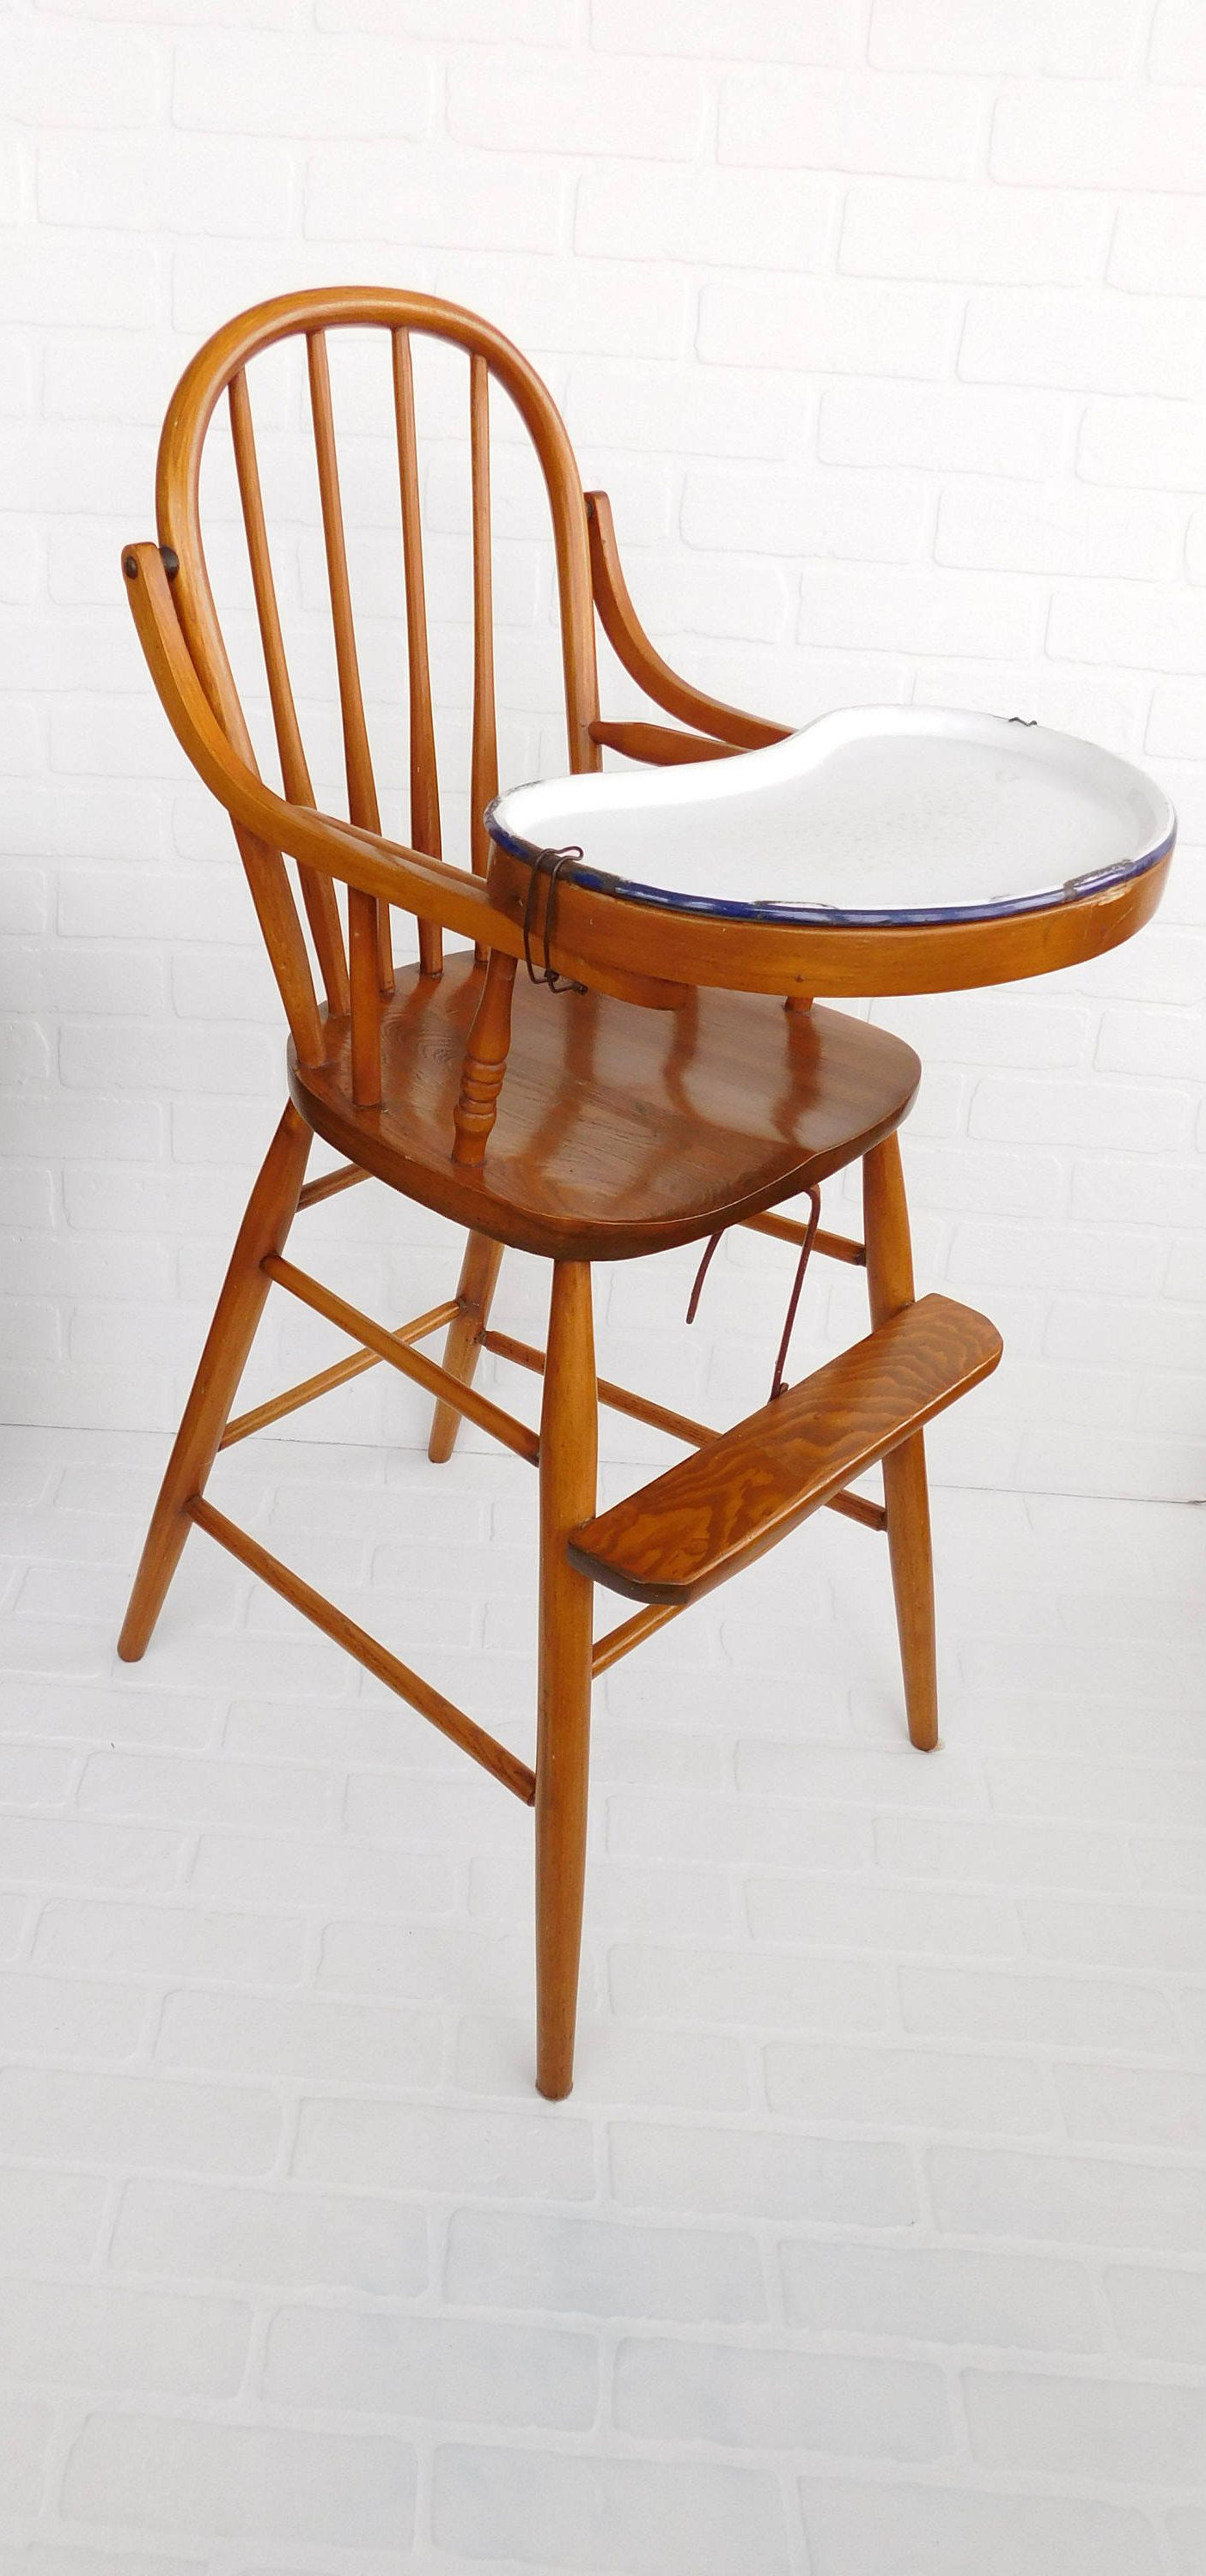 Antique Wood High Chair With Enamel Tray, Child's Oak Wood ...